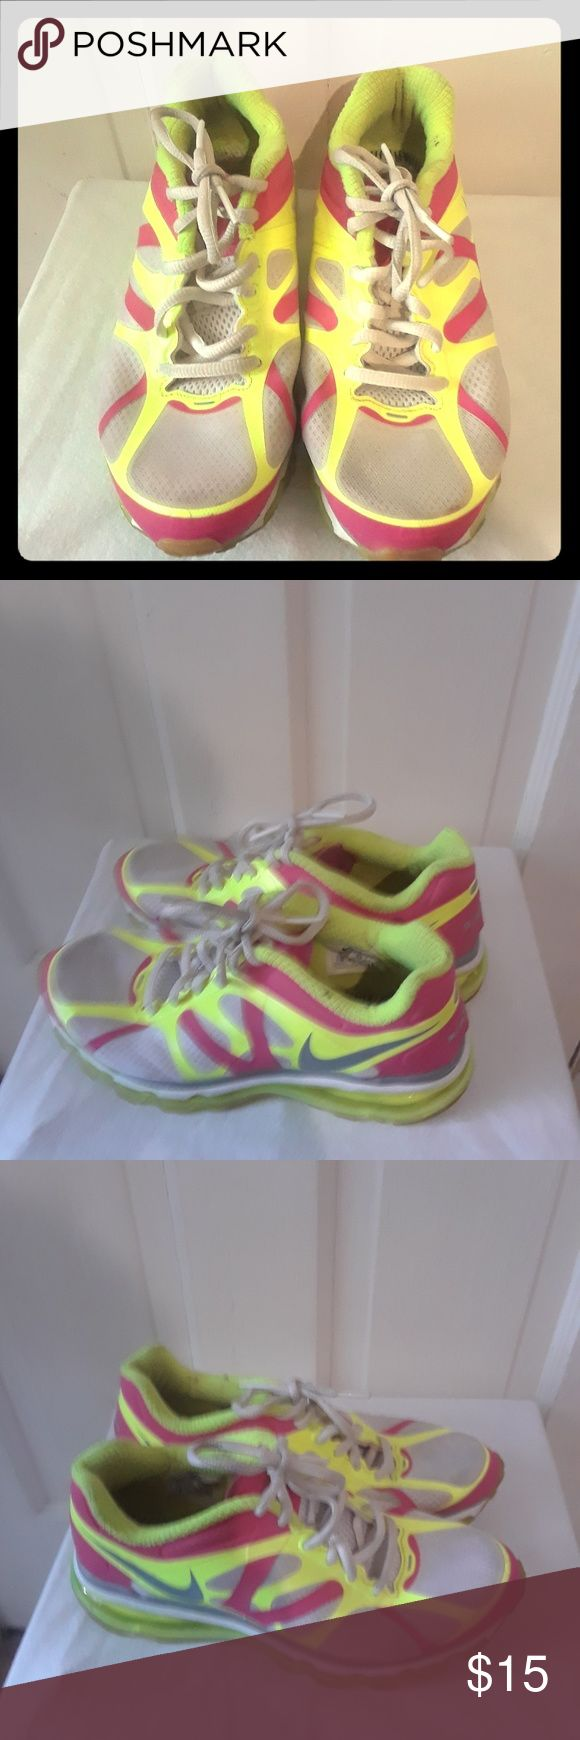 Nike Air max  Women's Athletic Size Us 5.5 UK 5 EUR 38 cm 24, no insoles Nike Shoes Athletic Shoes